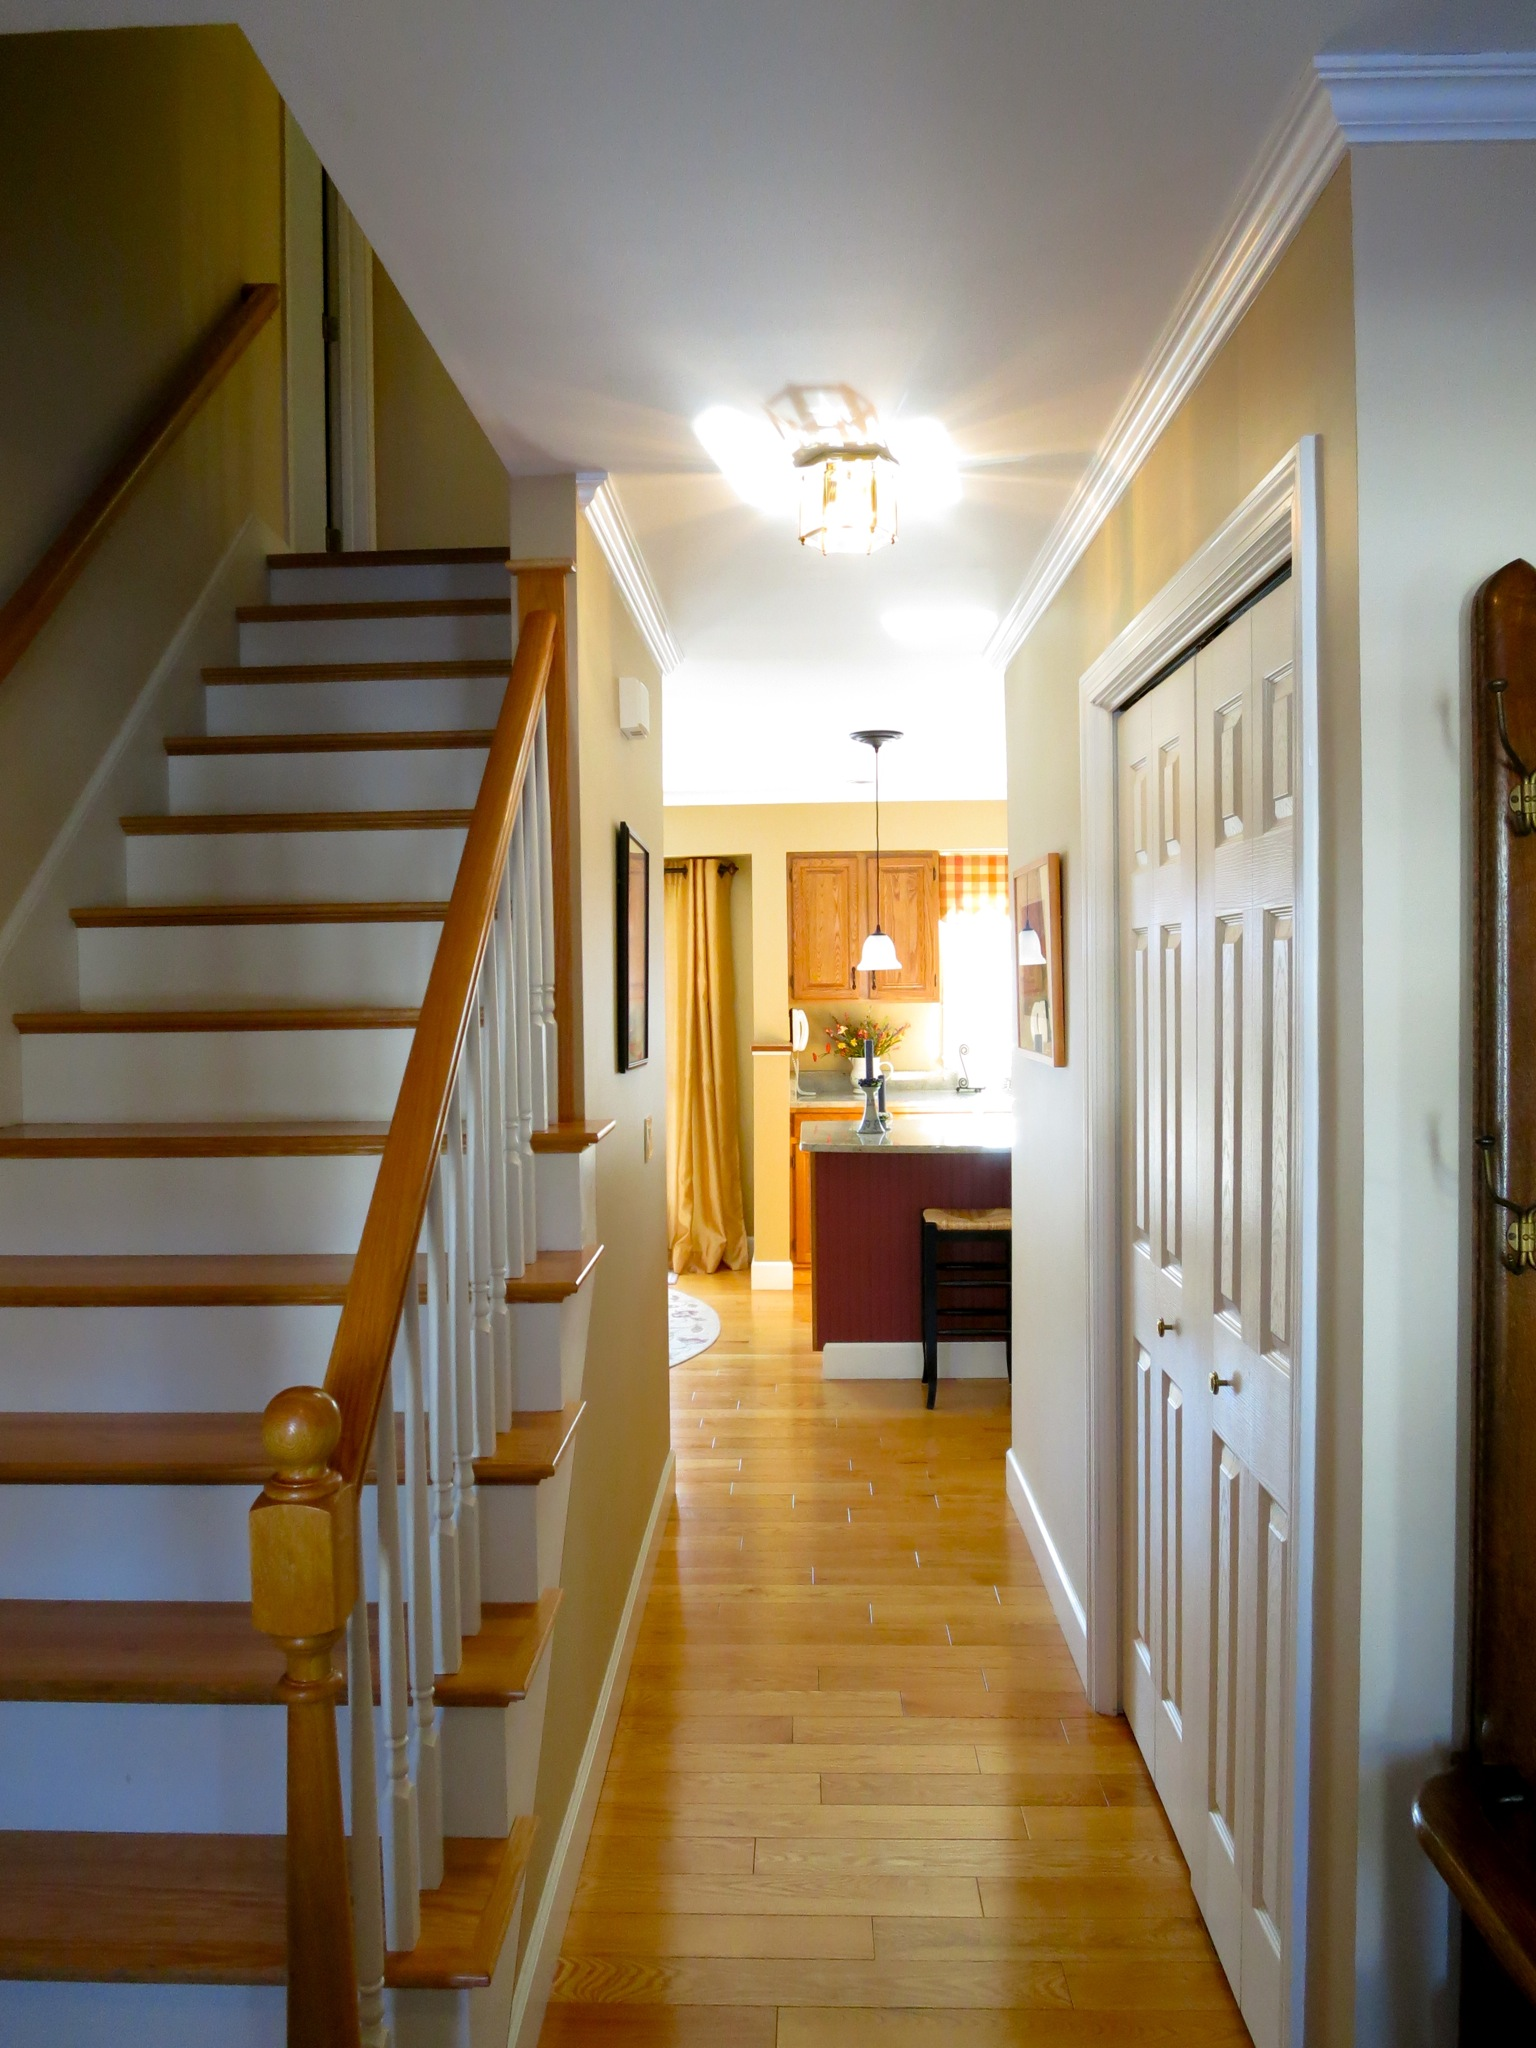 Hallmark of this style of home, the center hall offers a view through from front door to kitchen.